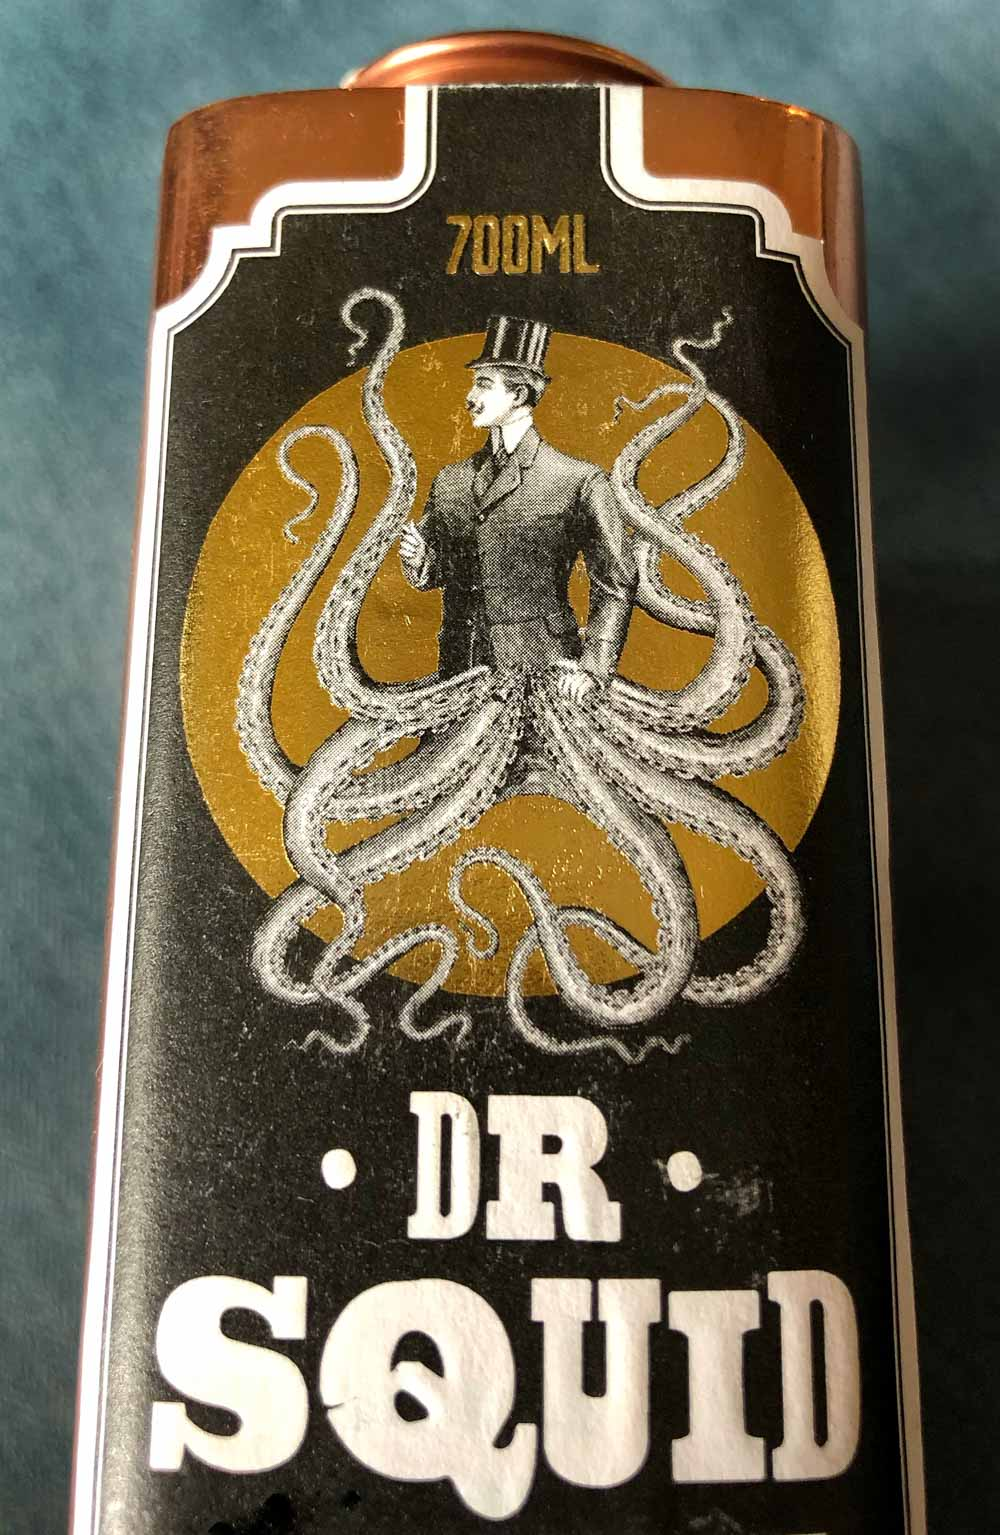 Dr-Squid Dr Squid Gin from Pocketful of Stones Distillers, Cornwall